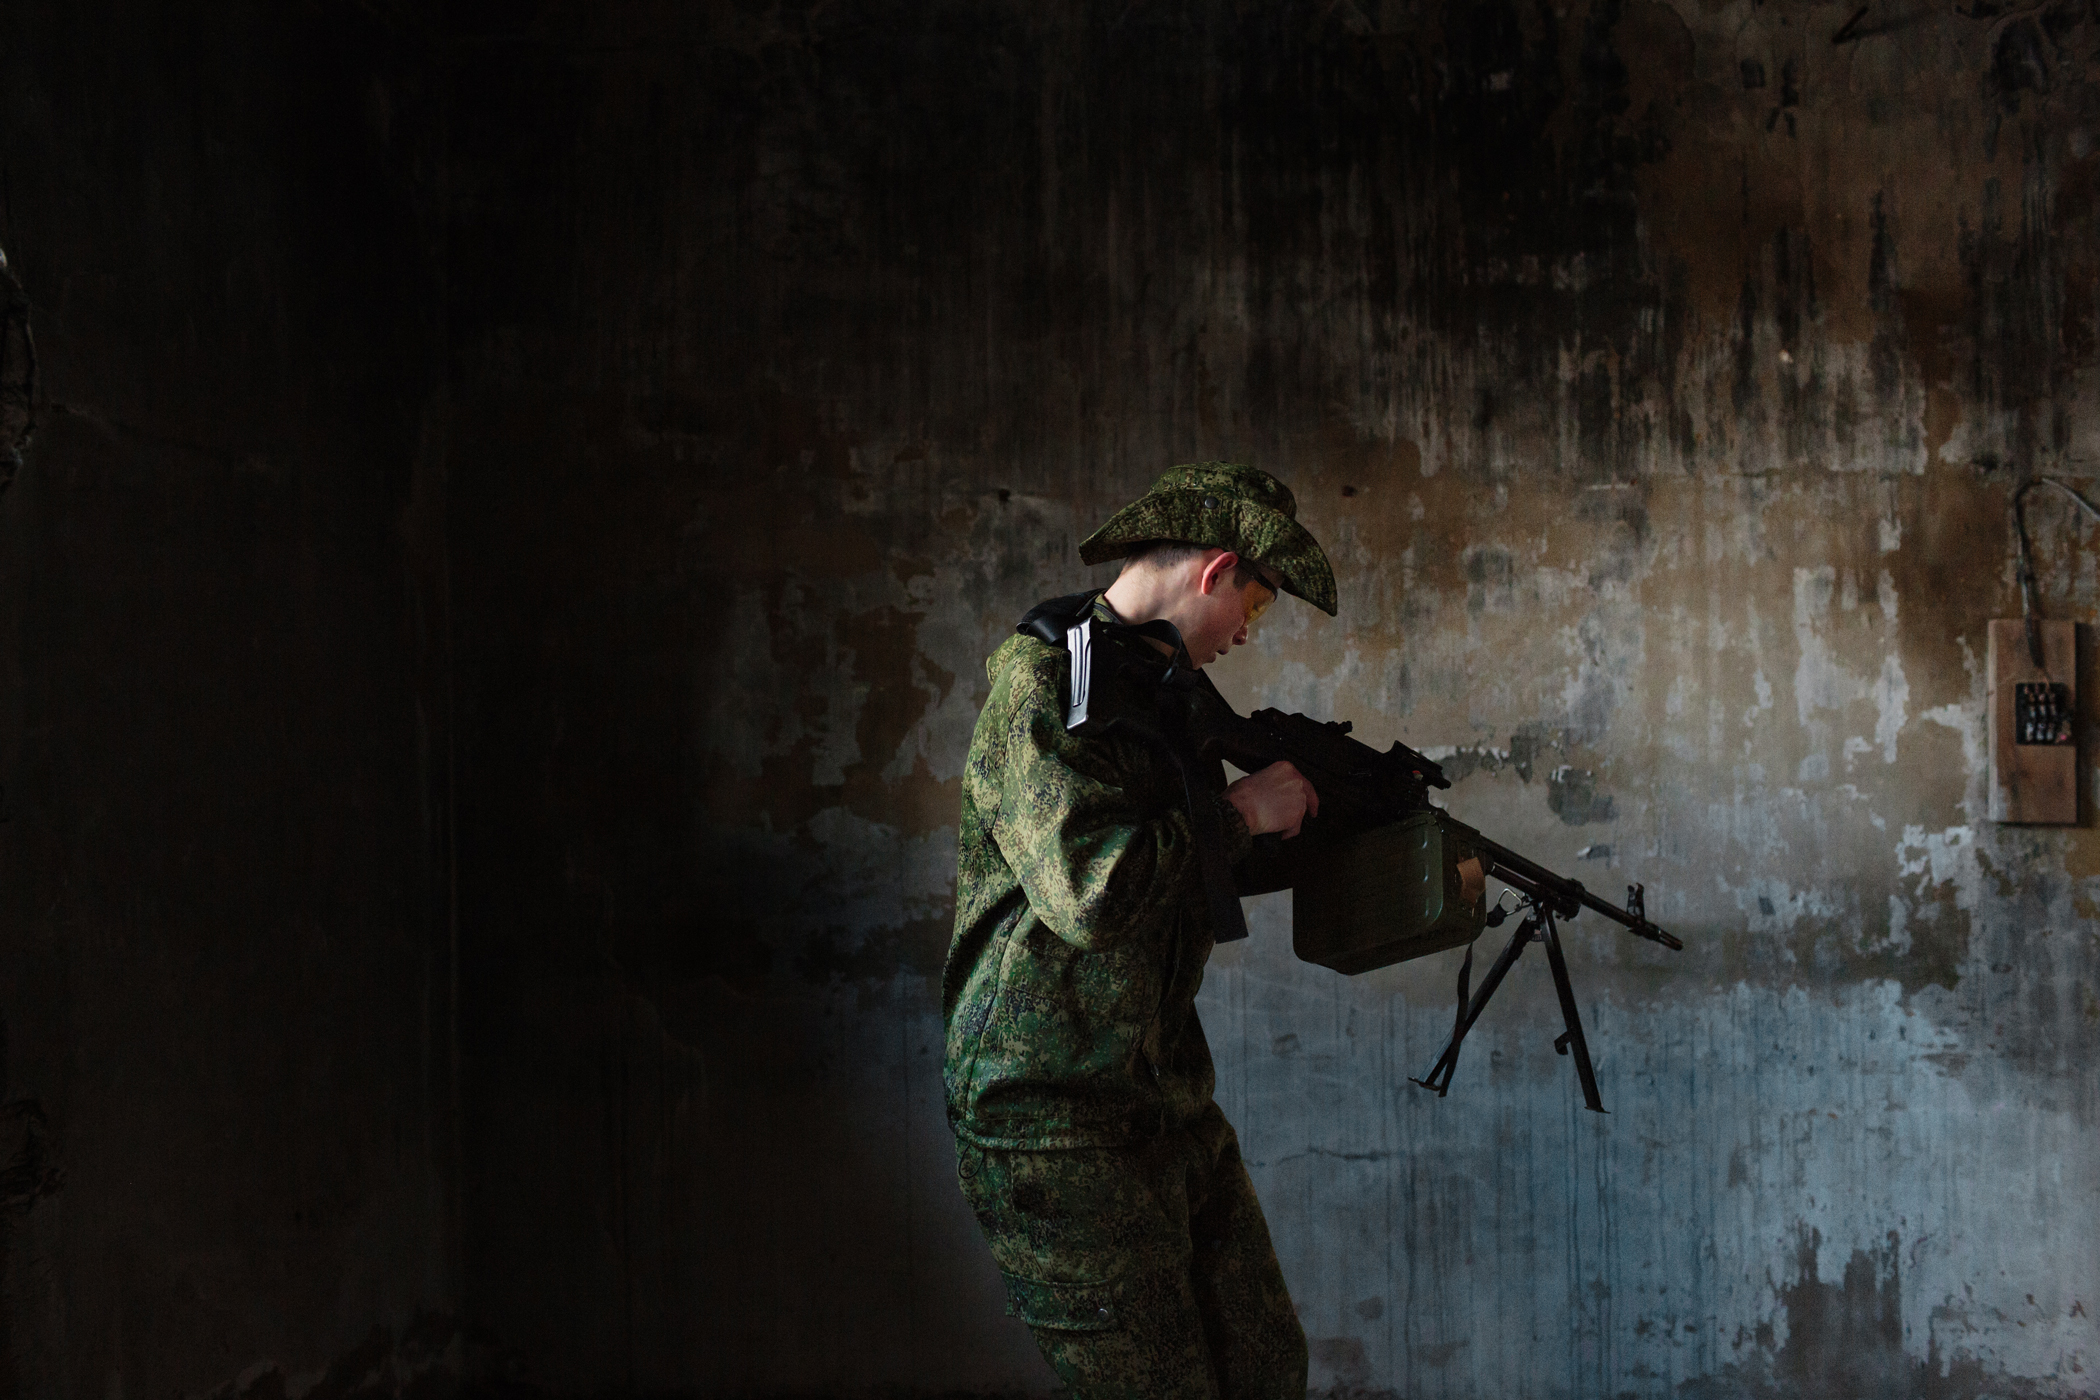 Artyom Baklashkin, 17, a student of the local secondary school in the village of Diveevo, stands guard in an abandoned building with a group known as the  Survivalists . They meet weekly after school with their physical education instructor, and train to survive future wars and post-apocalyptic life. They are using airsoft guns for the practice and competition. Air-soft is a sport that replicates military action, but fires non-lethal pellets.